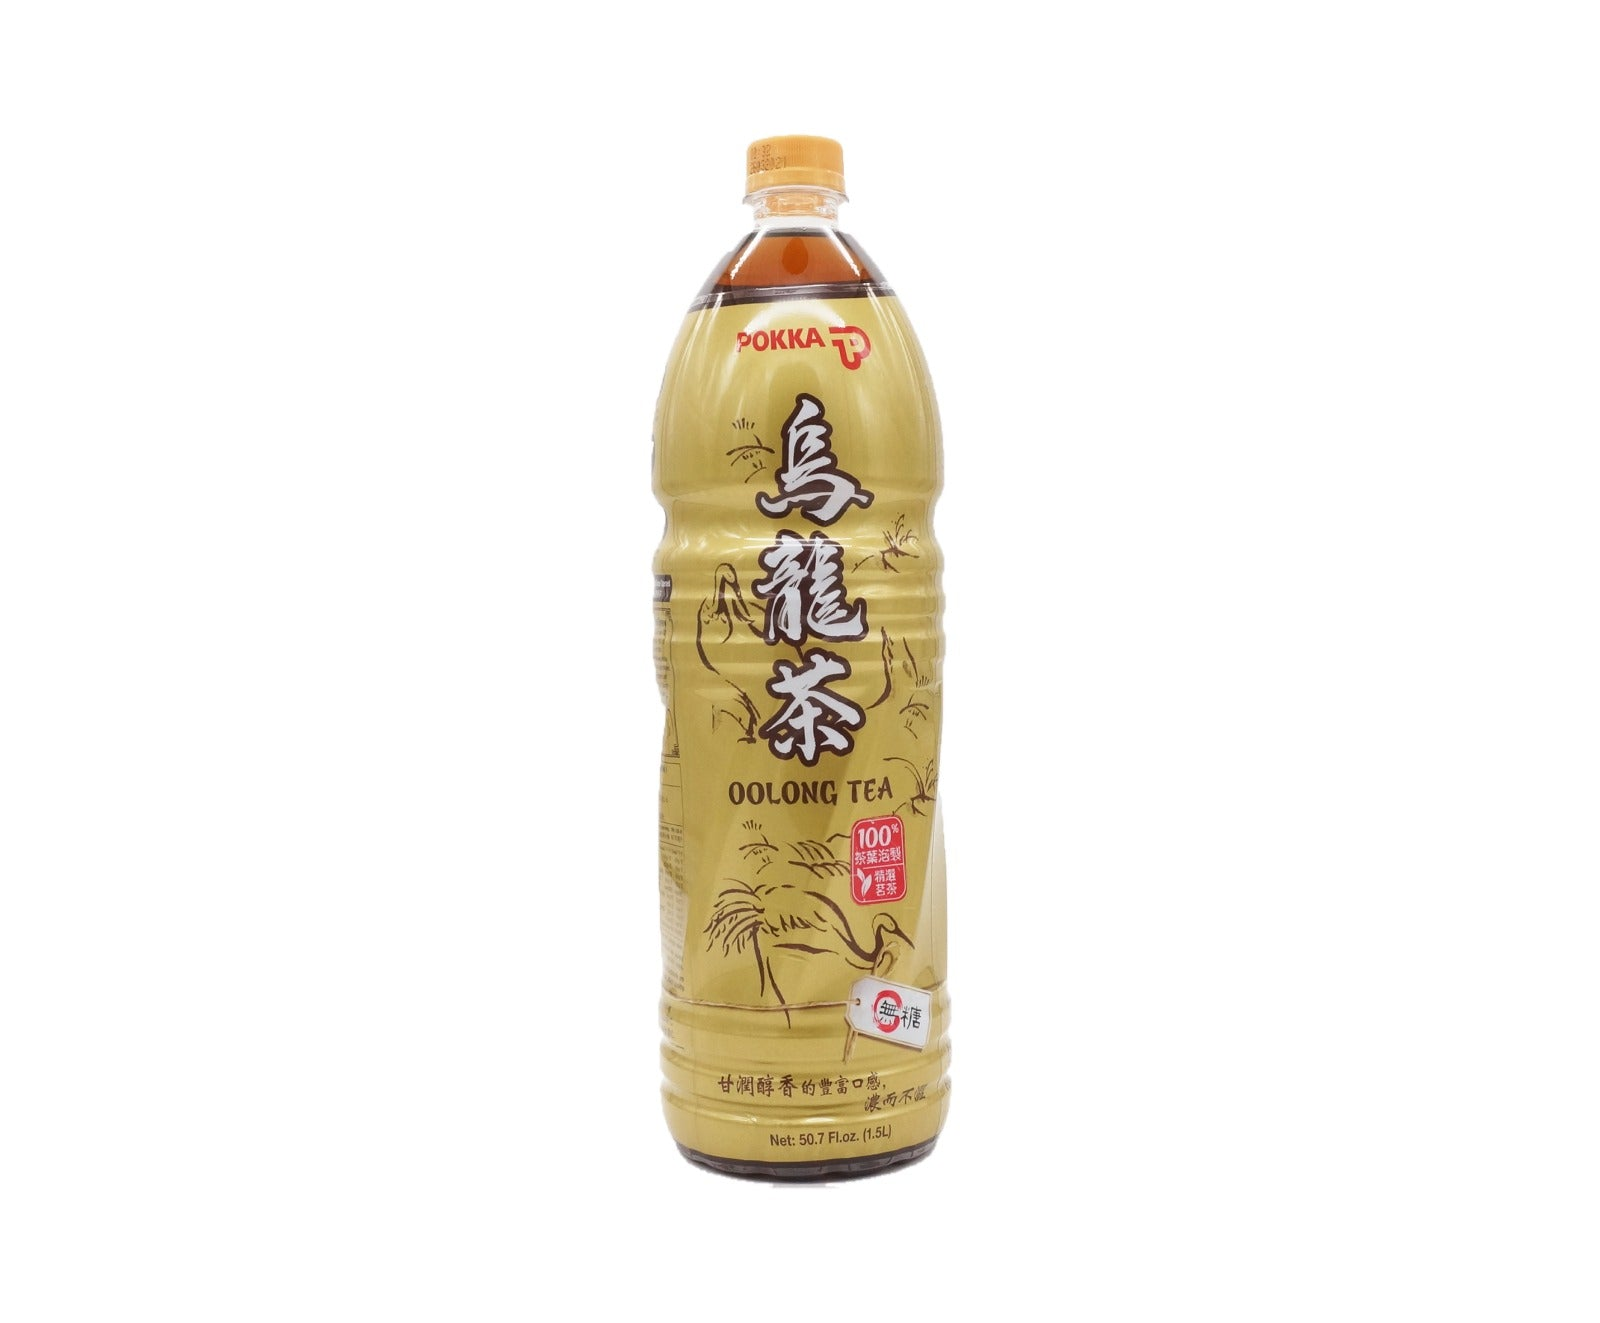 Pokka Oolong Tea Bottle (1.5L - Piece)